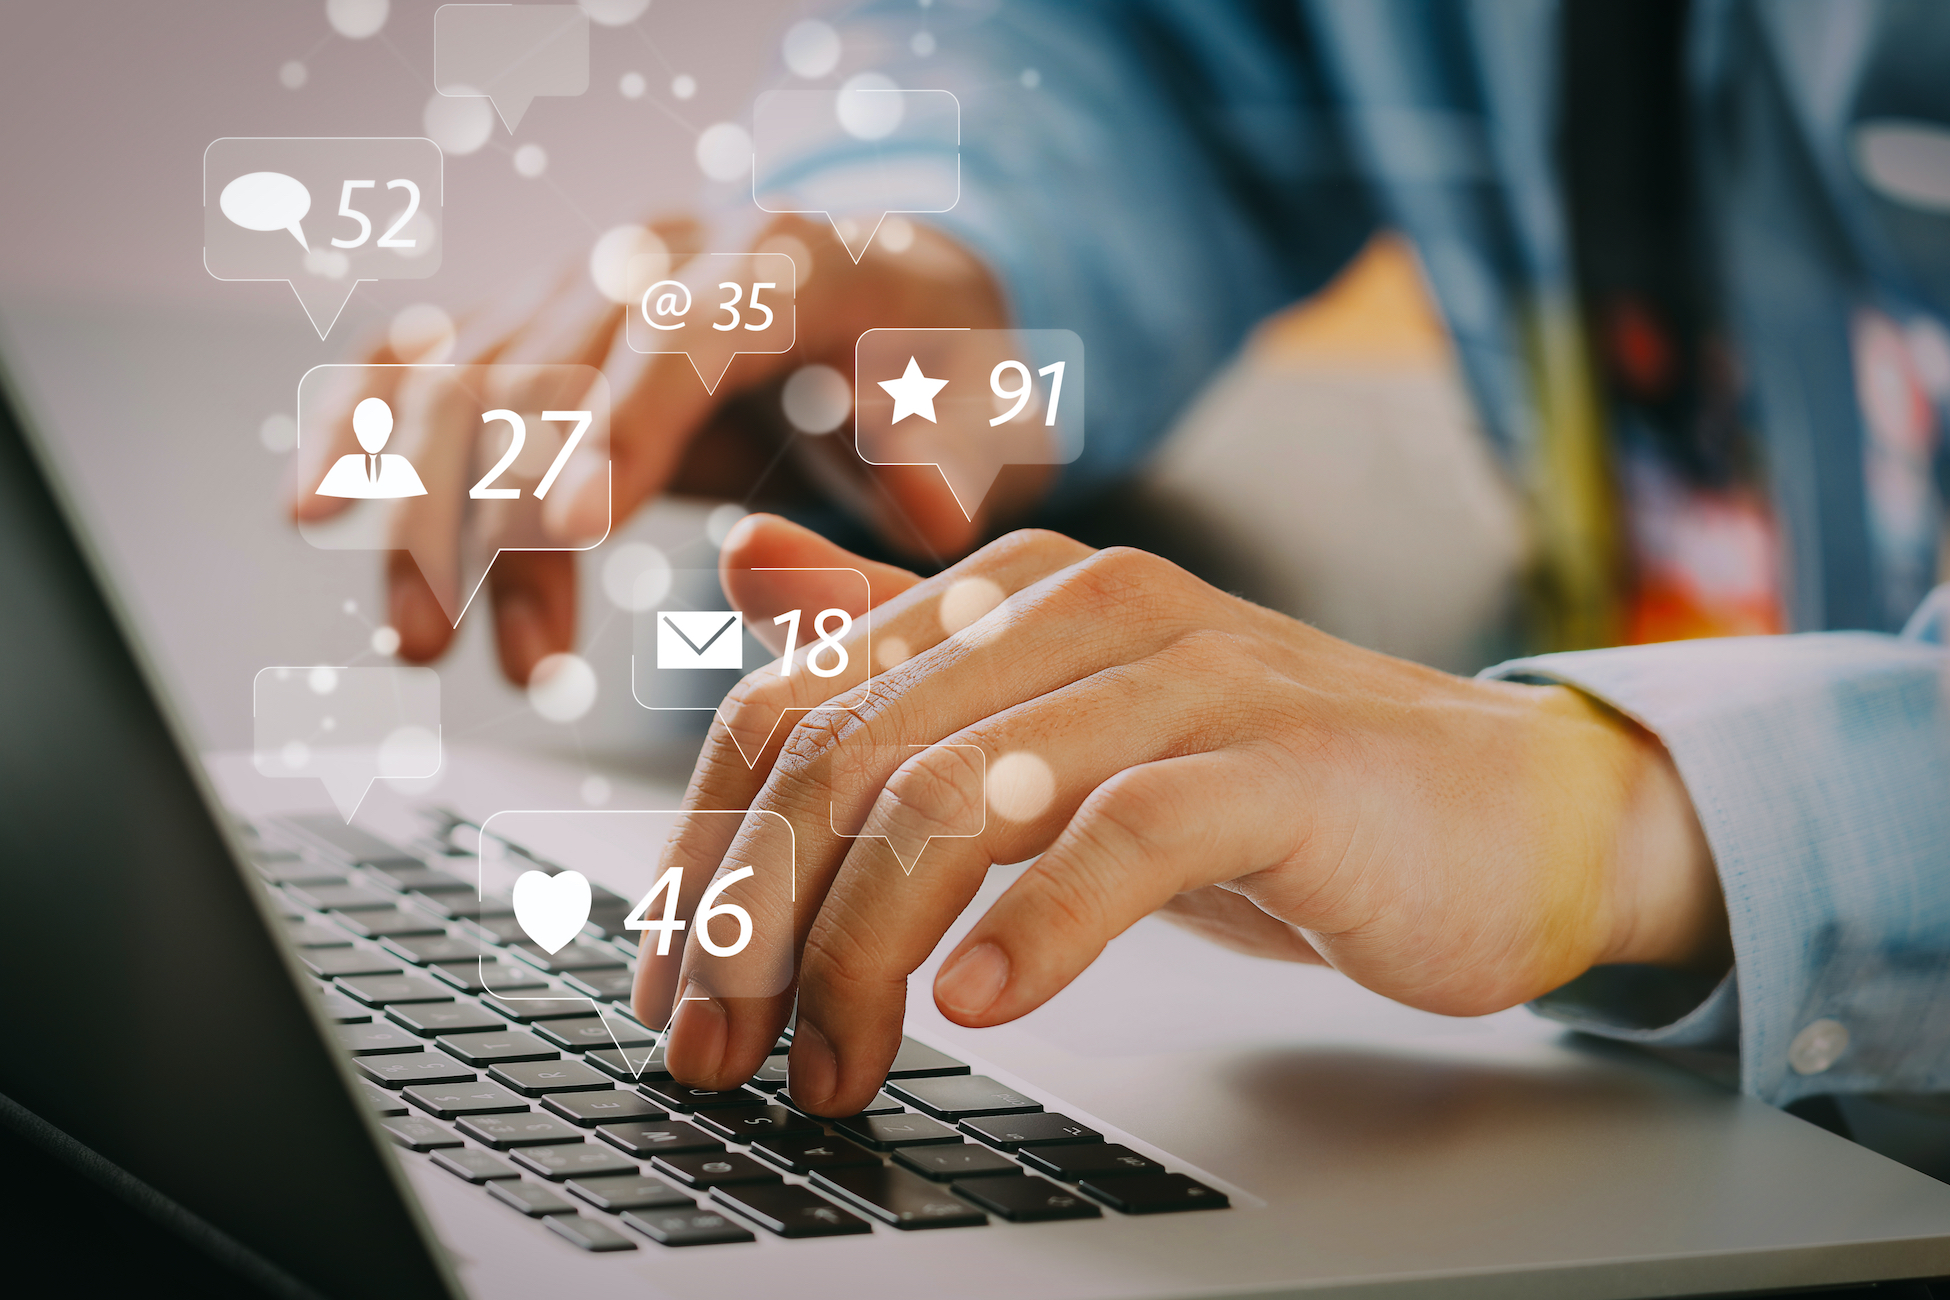 Hands typing on a keyboard, with social engagement icons.